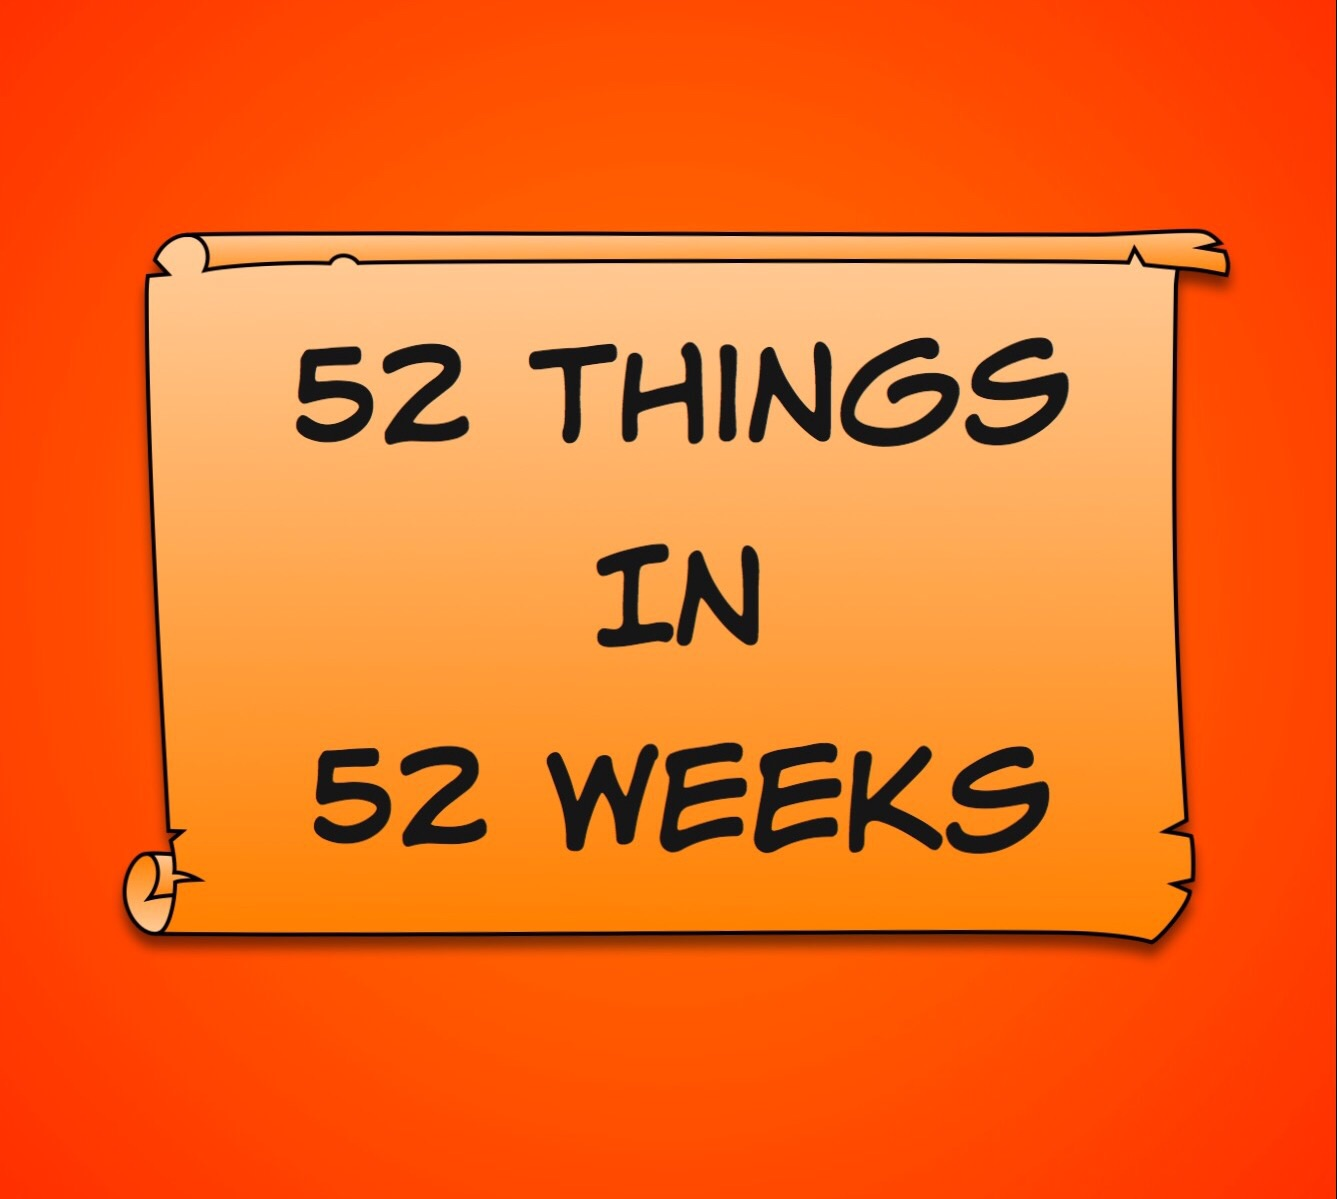 52 things in 52 weeks